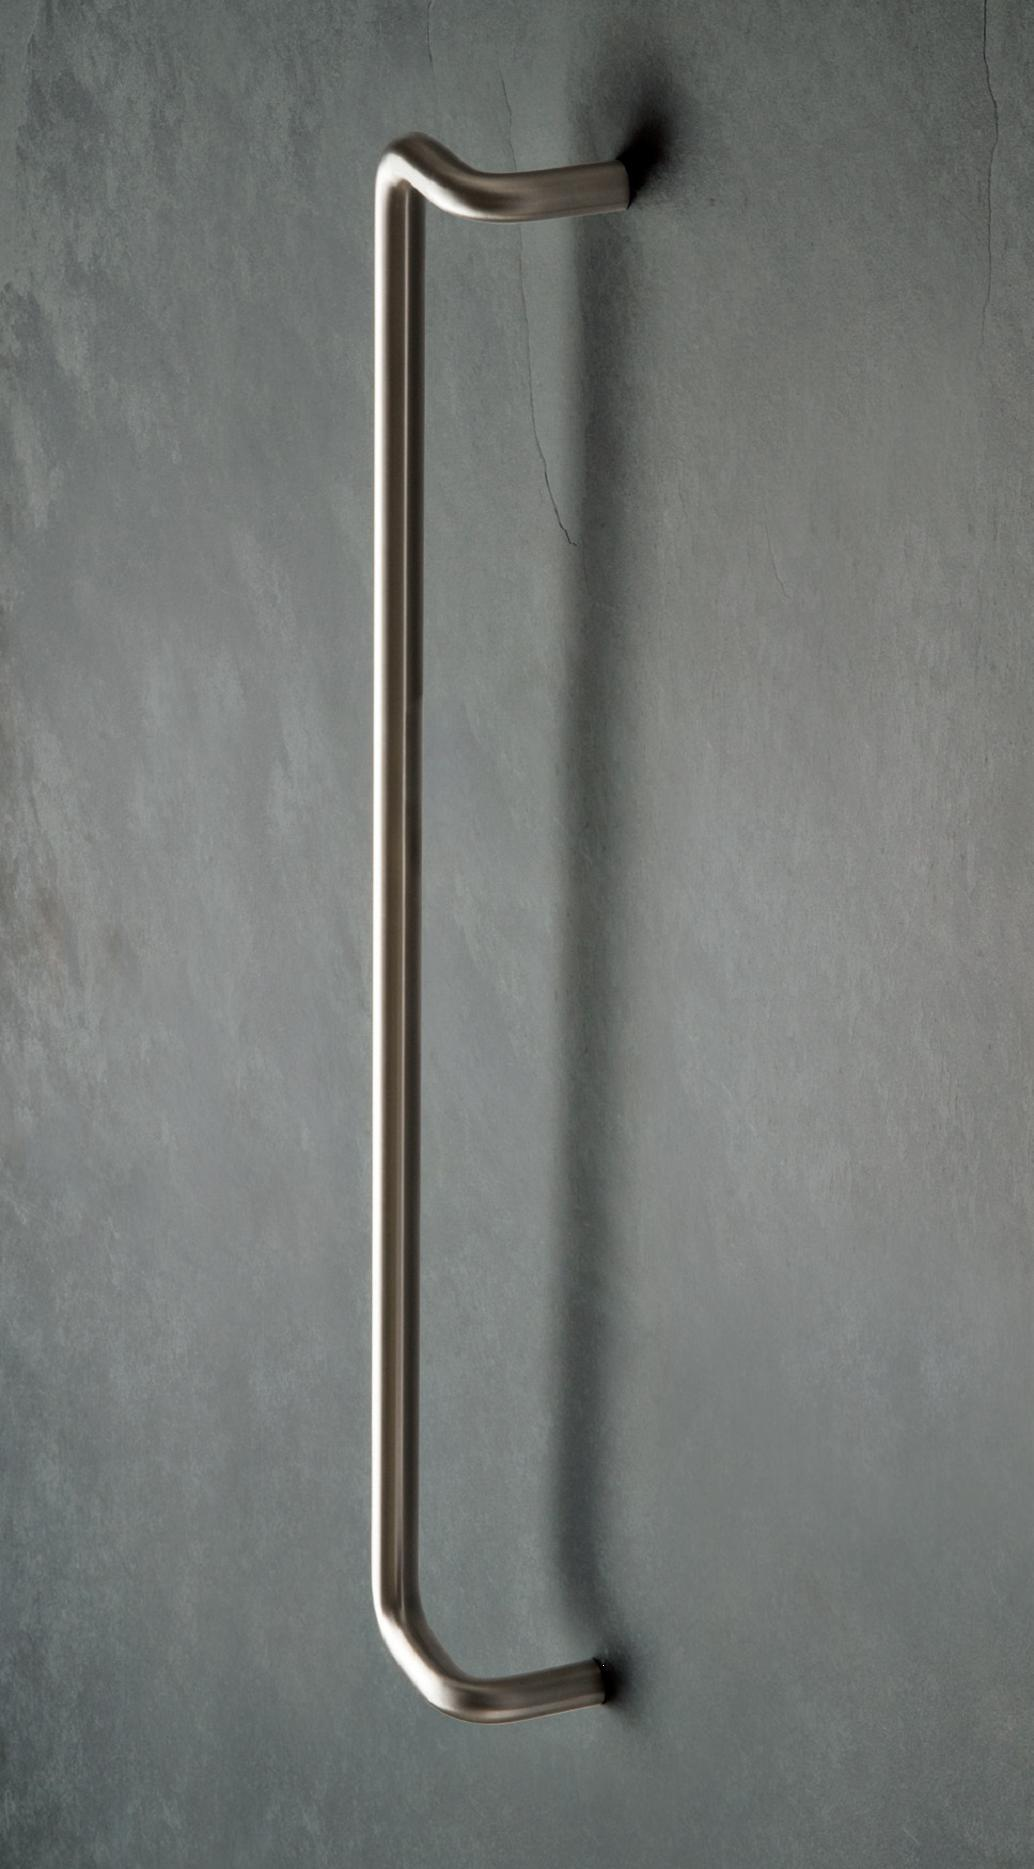 ASPH004 / 104 - ASSA ABLOY Pull Handle